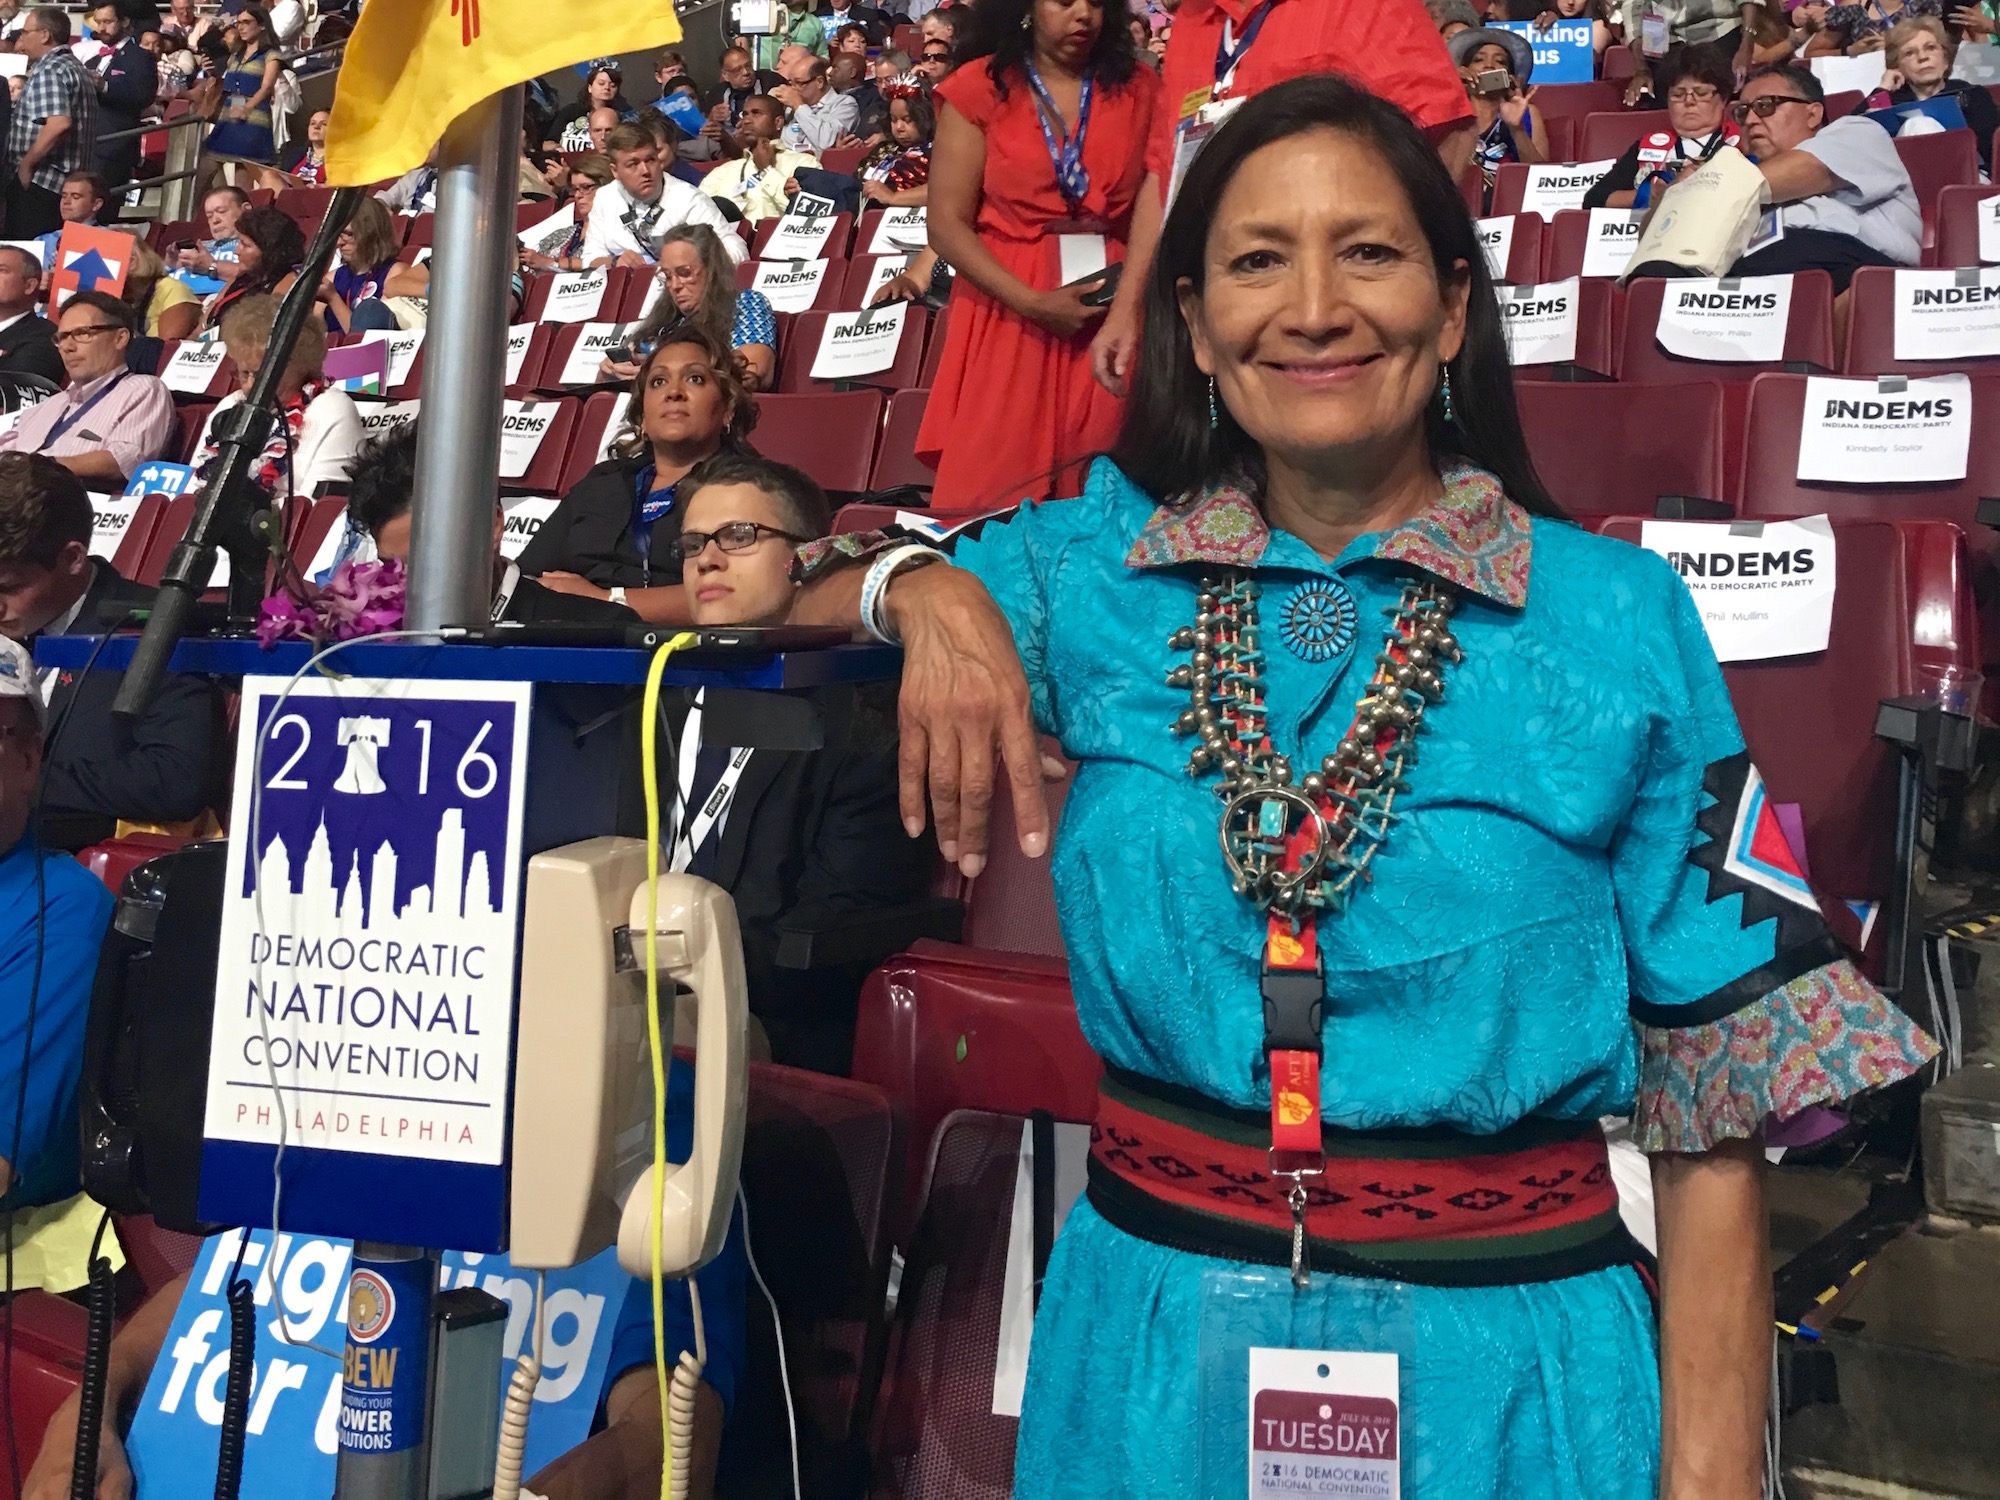 Indian Country shares spotlight at Democratic National Convention